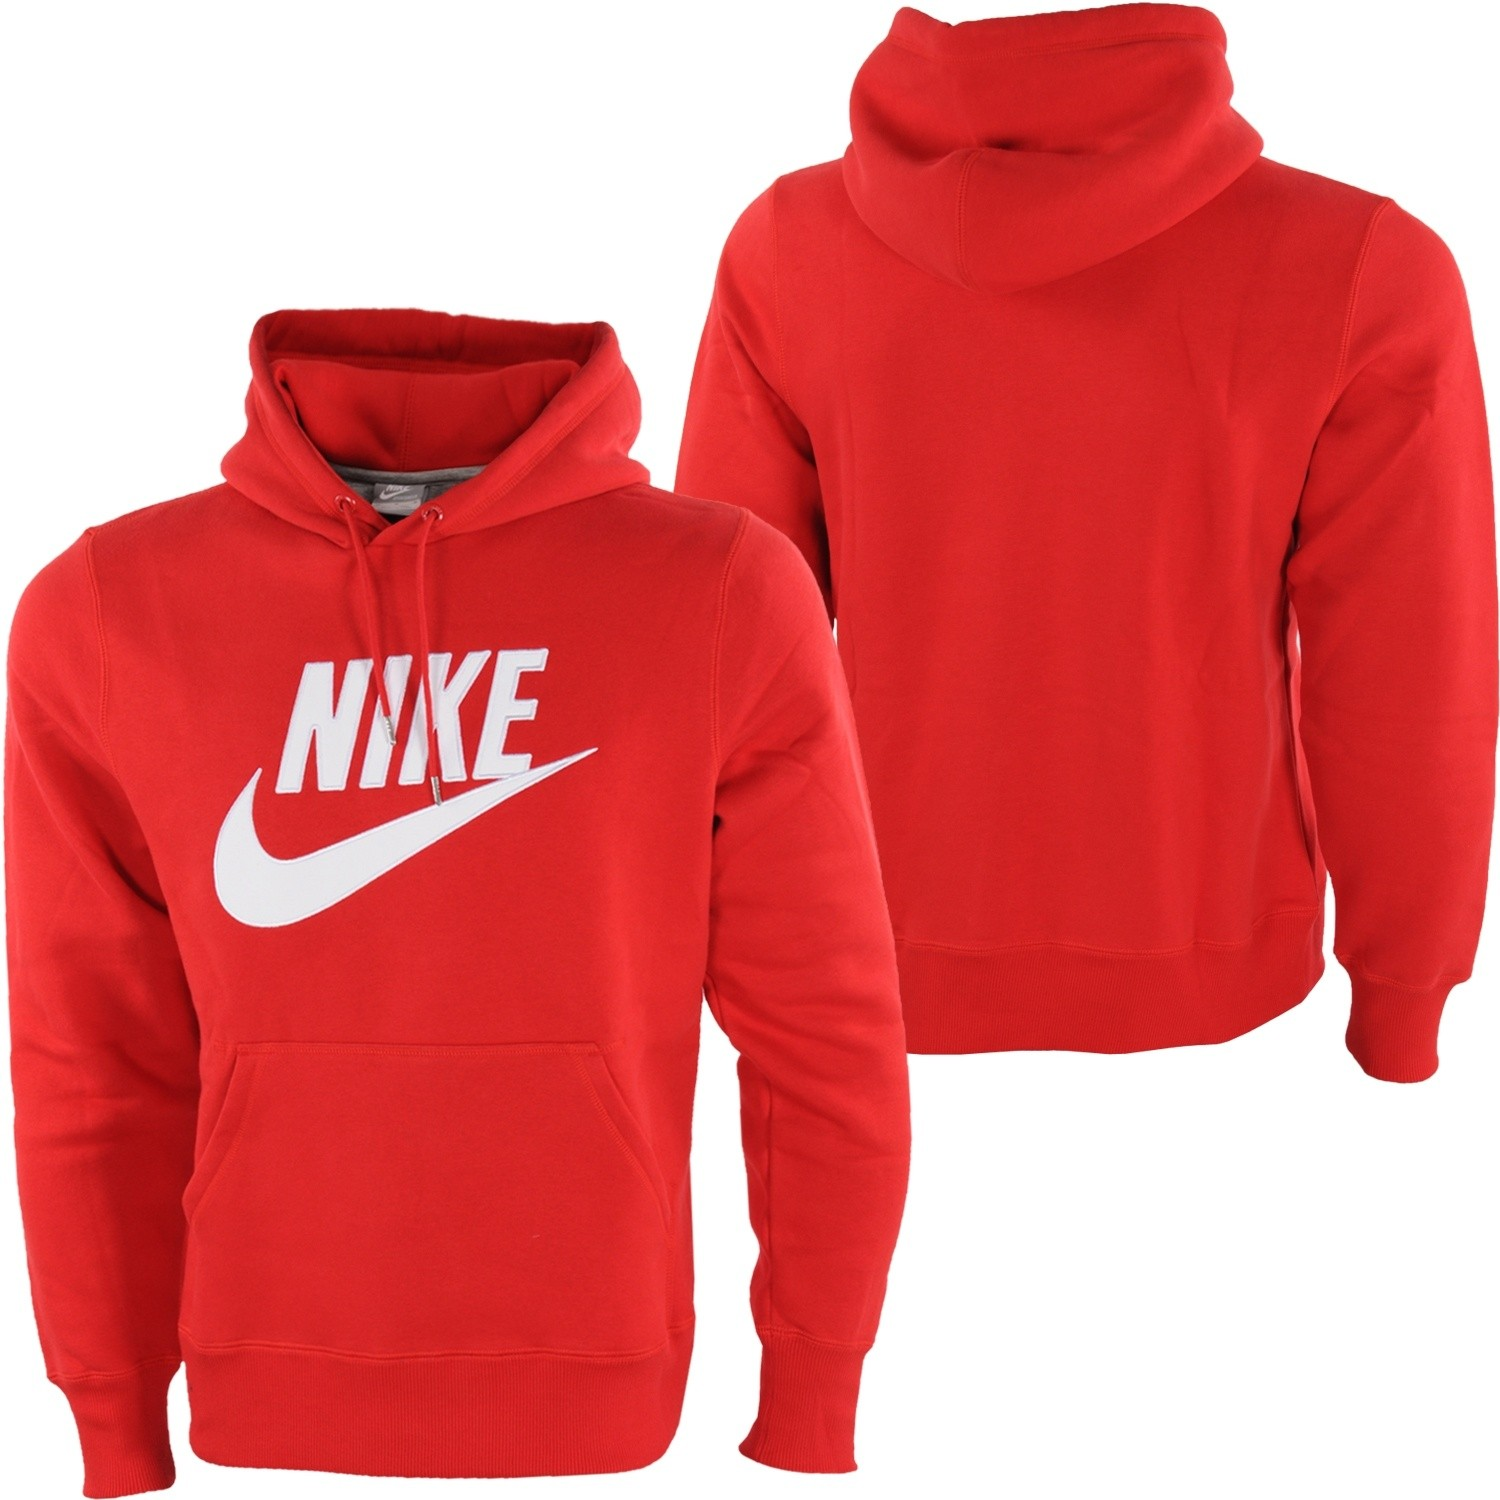 7707ab819 Specification: Red Color Export Quaality Nike Brand Fleece Fabric  Manufacture Bangladesh Nike Hoodie Jacket (APH-15)